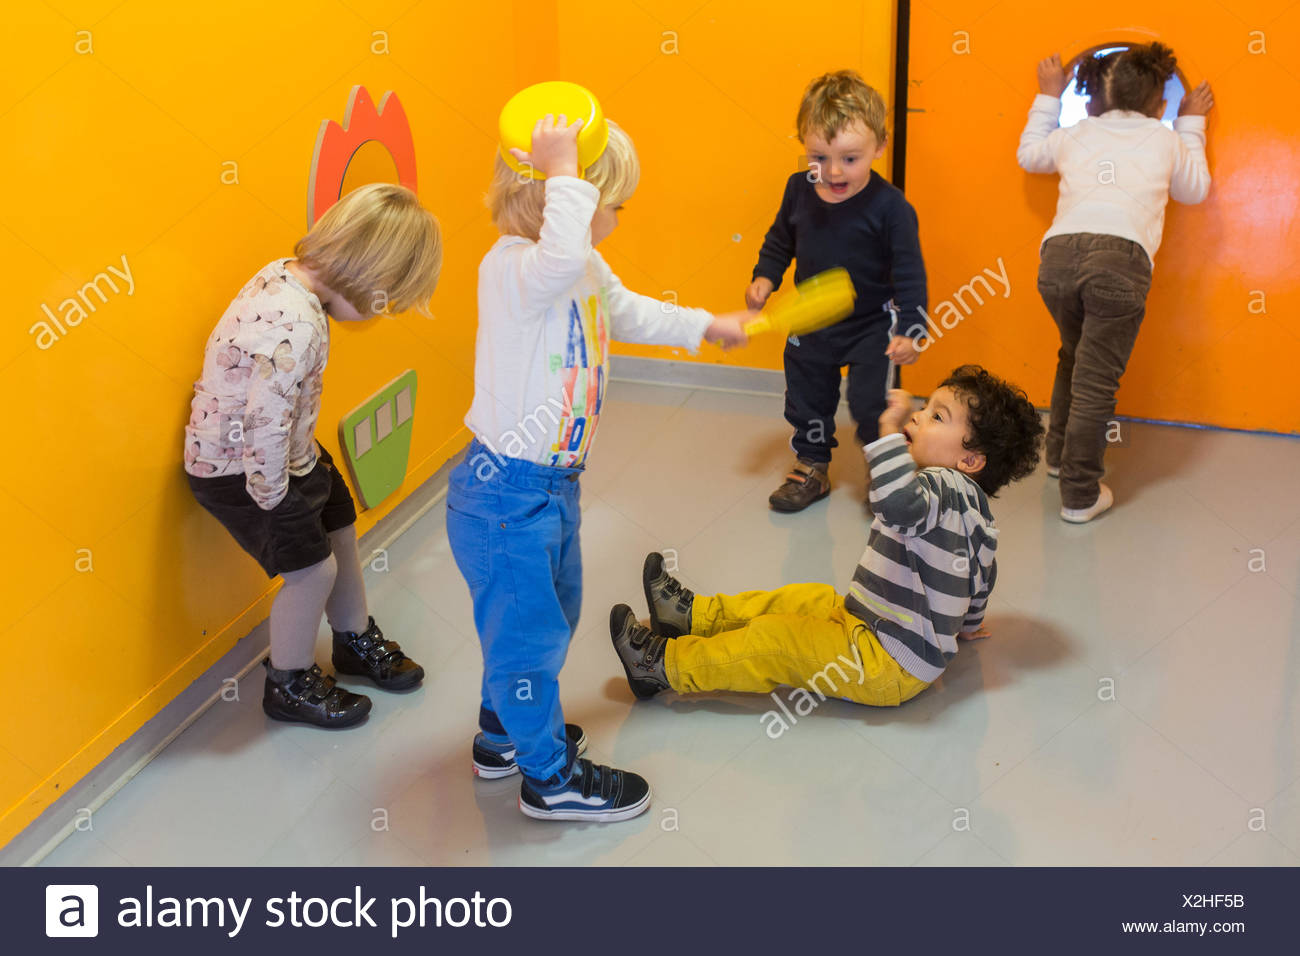 Shared playroom of day nursery and day care center, Angoulême, France. - Stock Image